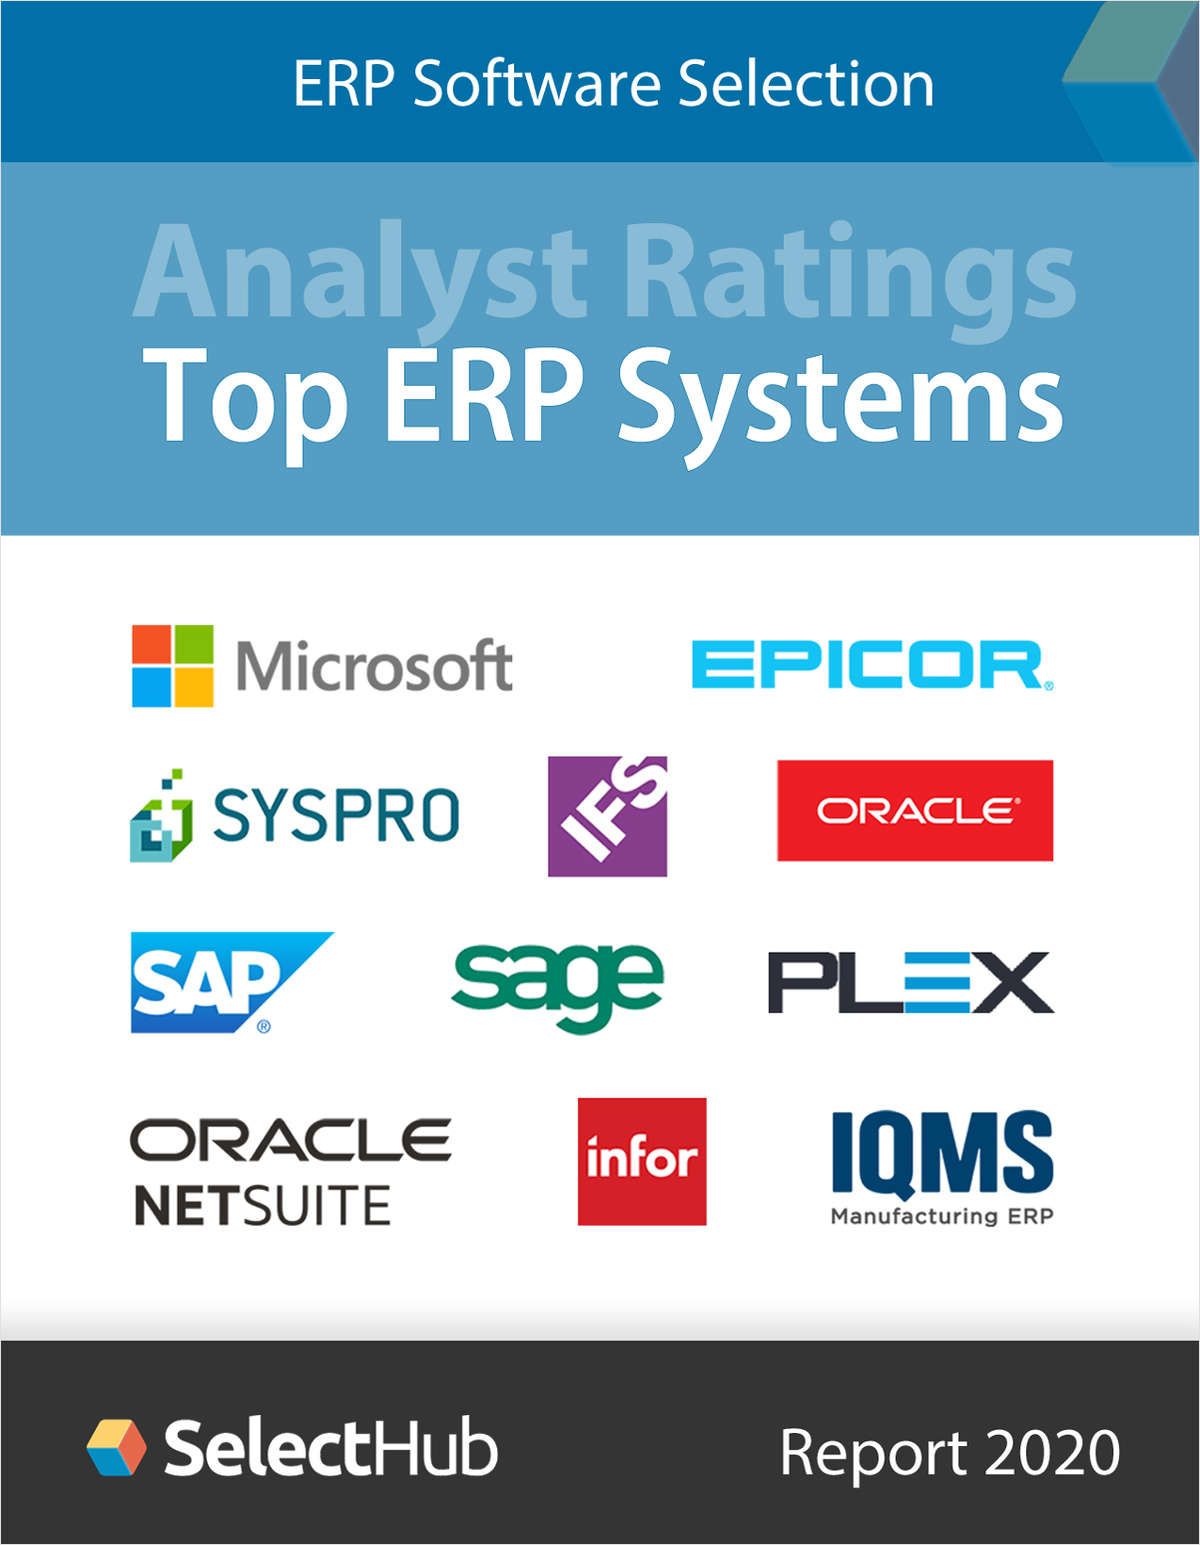 Upgrade or Replace Your ERP System? Get Analyst Ratings Report and Expert Advice